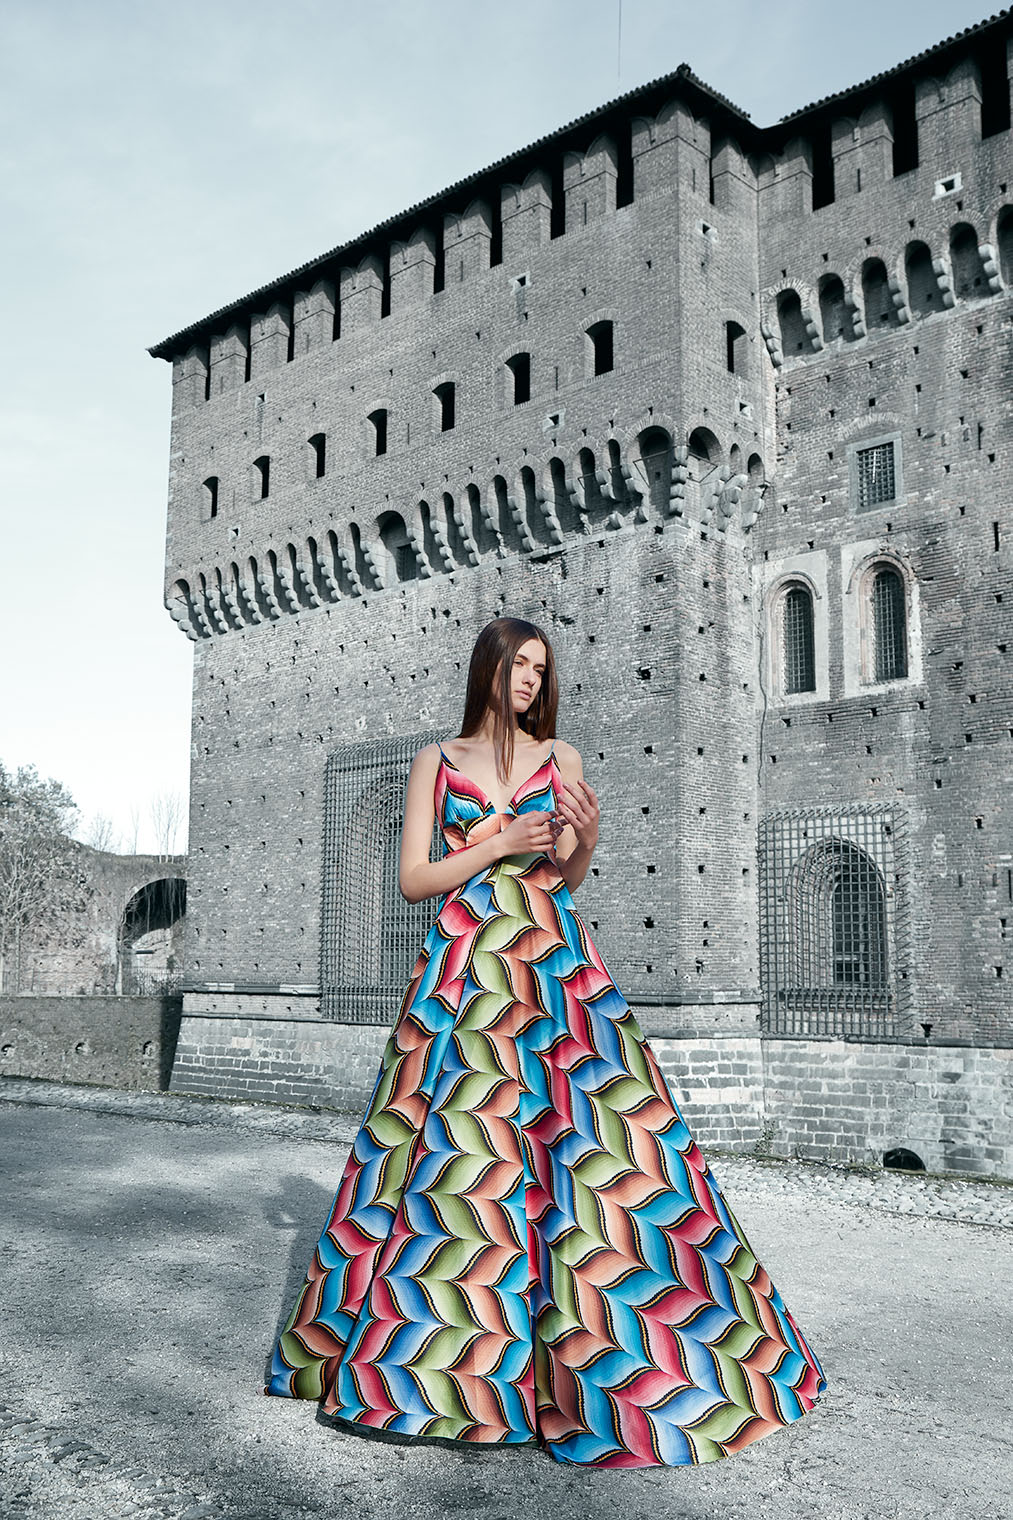 girl in festive gown in front of castle in Milan, Italy in fashion editorial